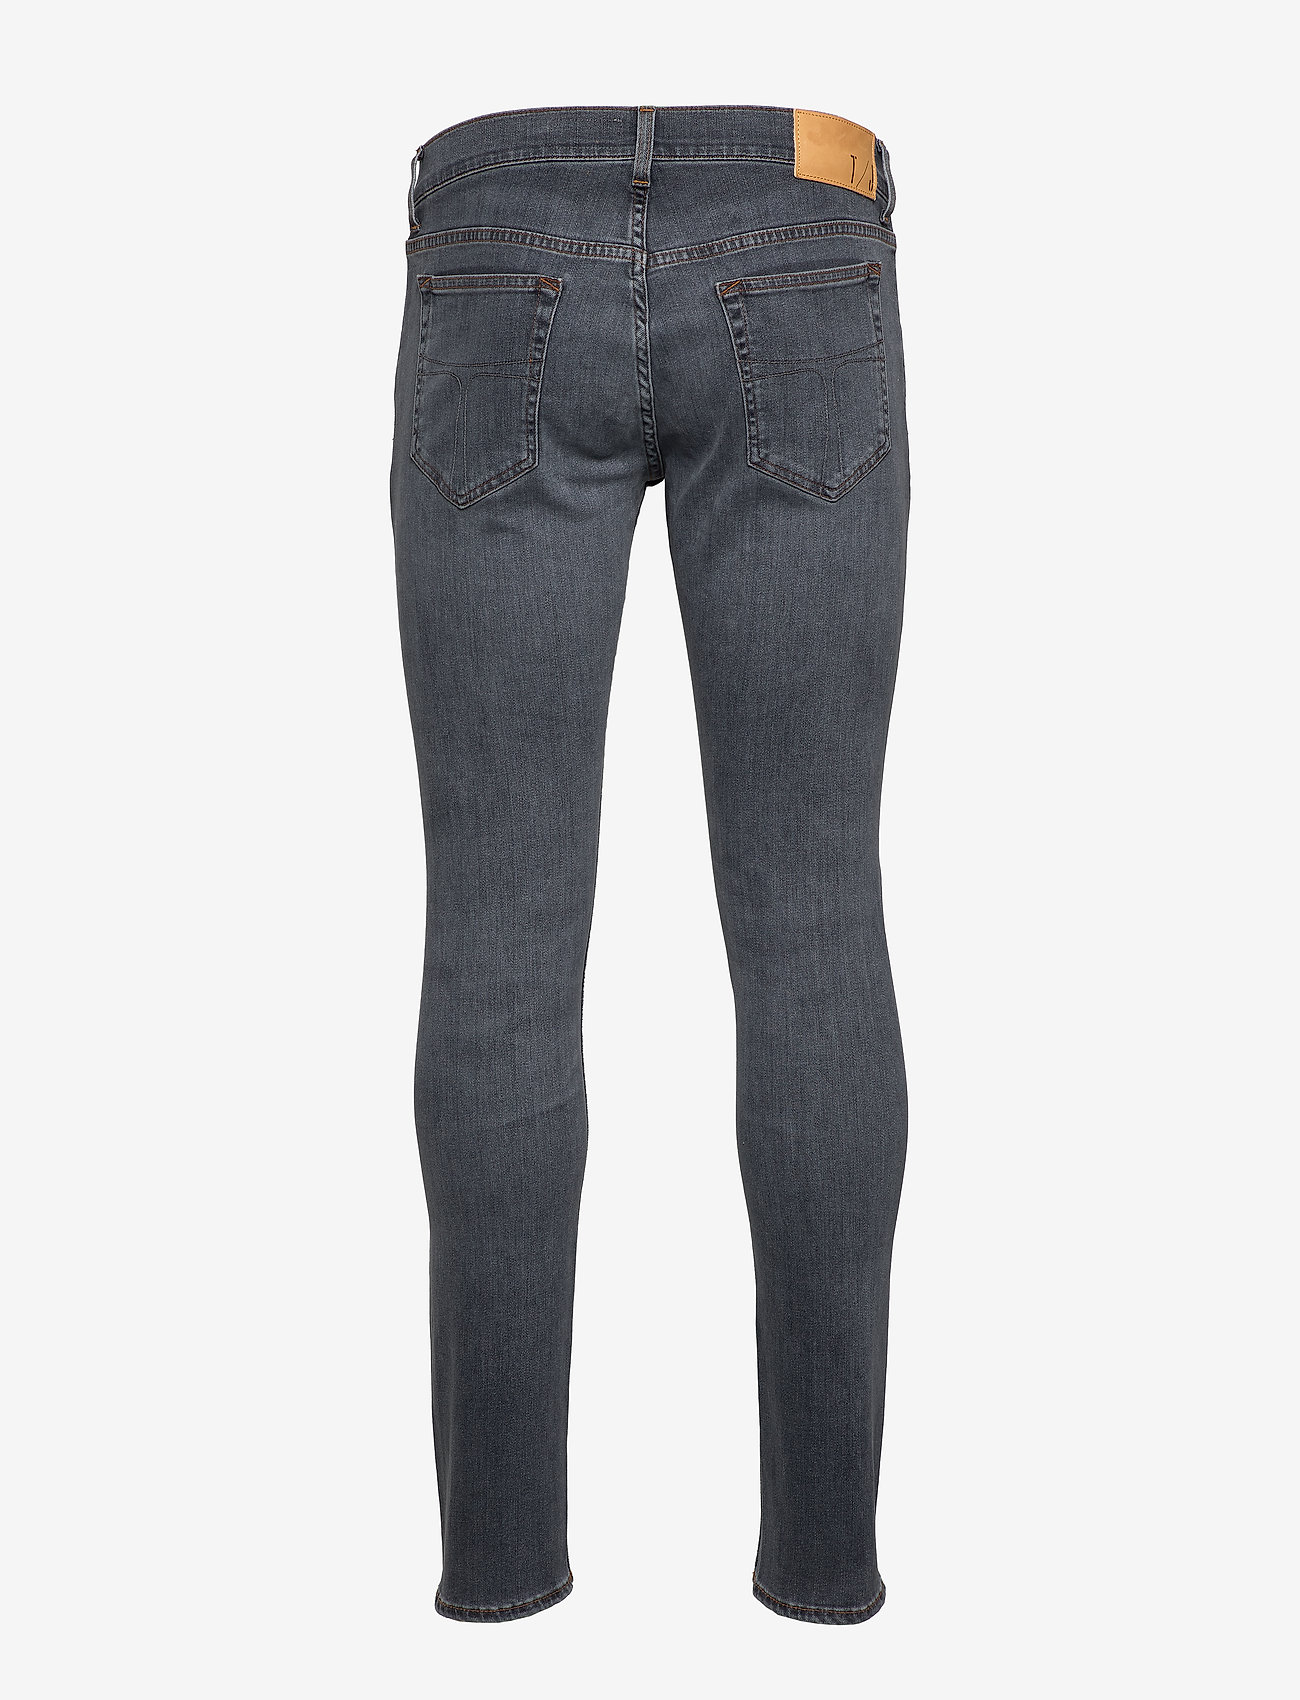 Tiger of Sweden Jeans - SLIM - slim jeans - black - 1